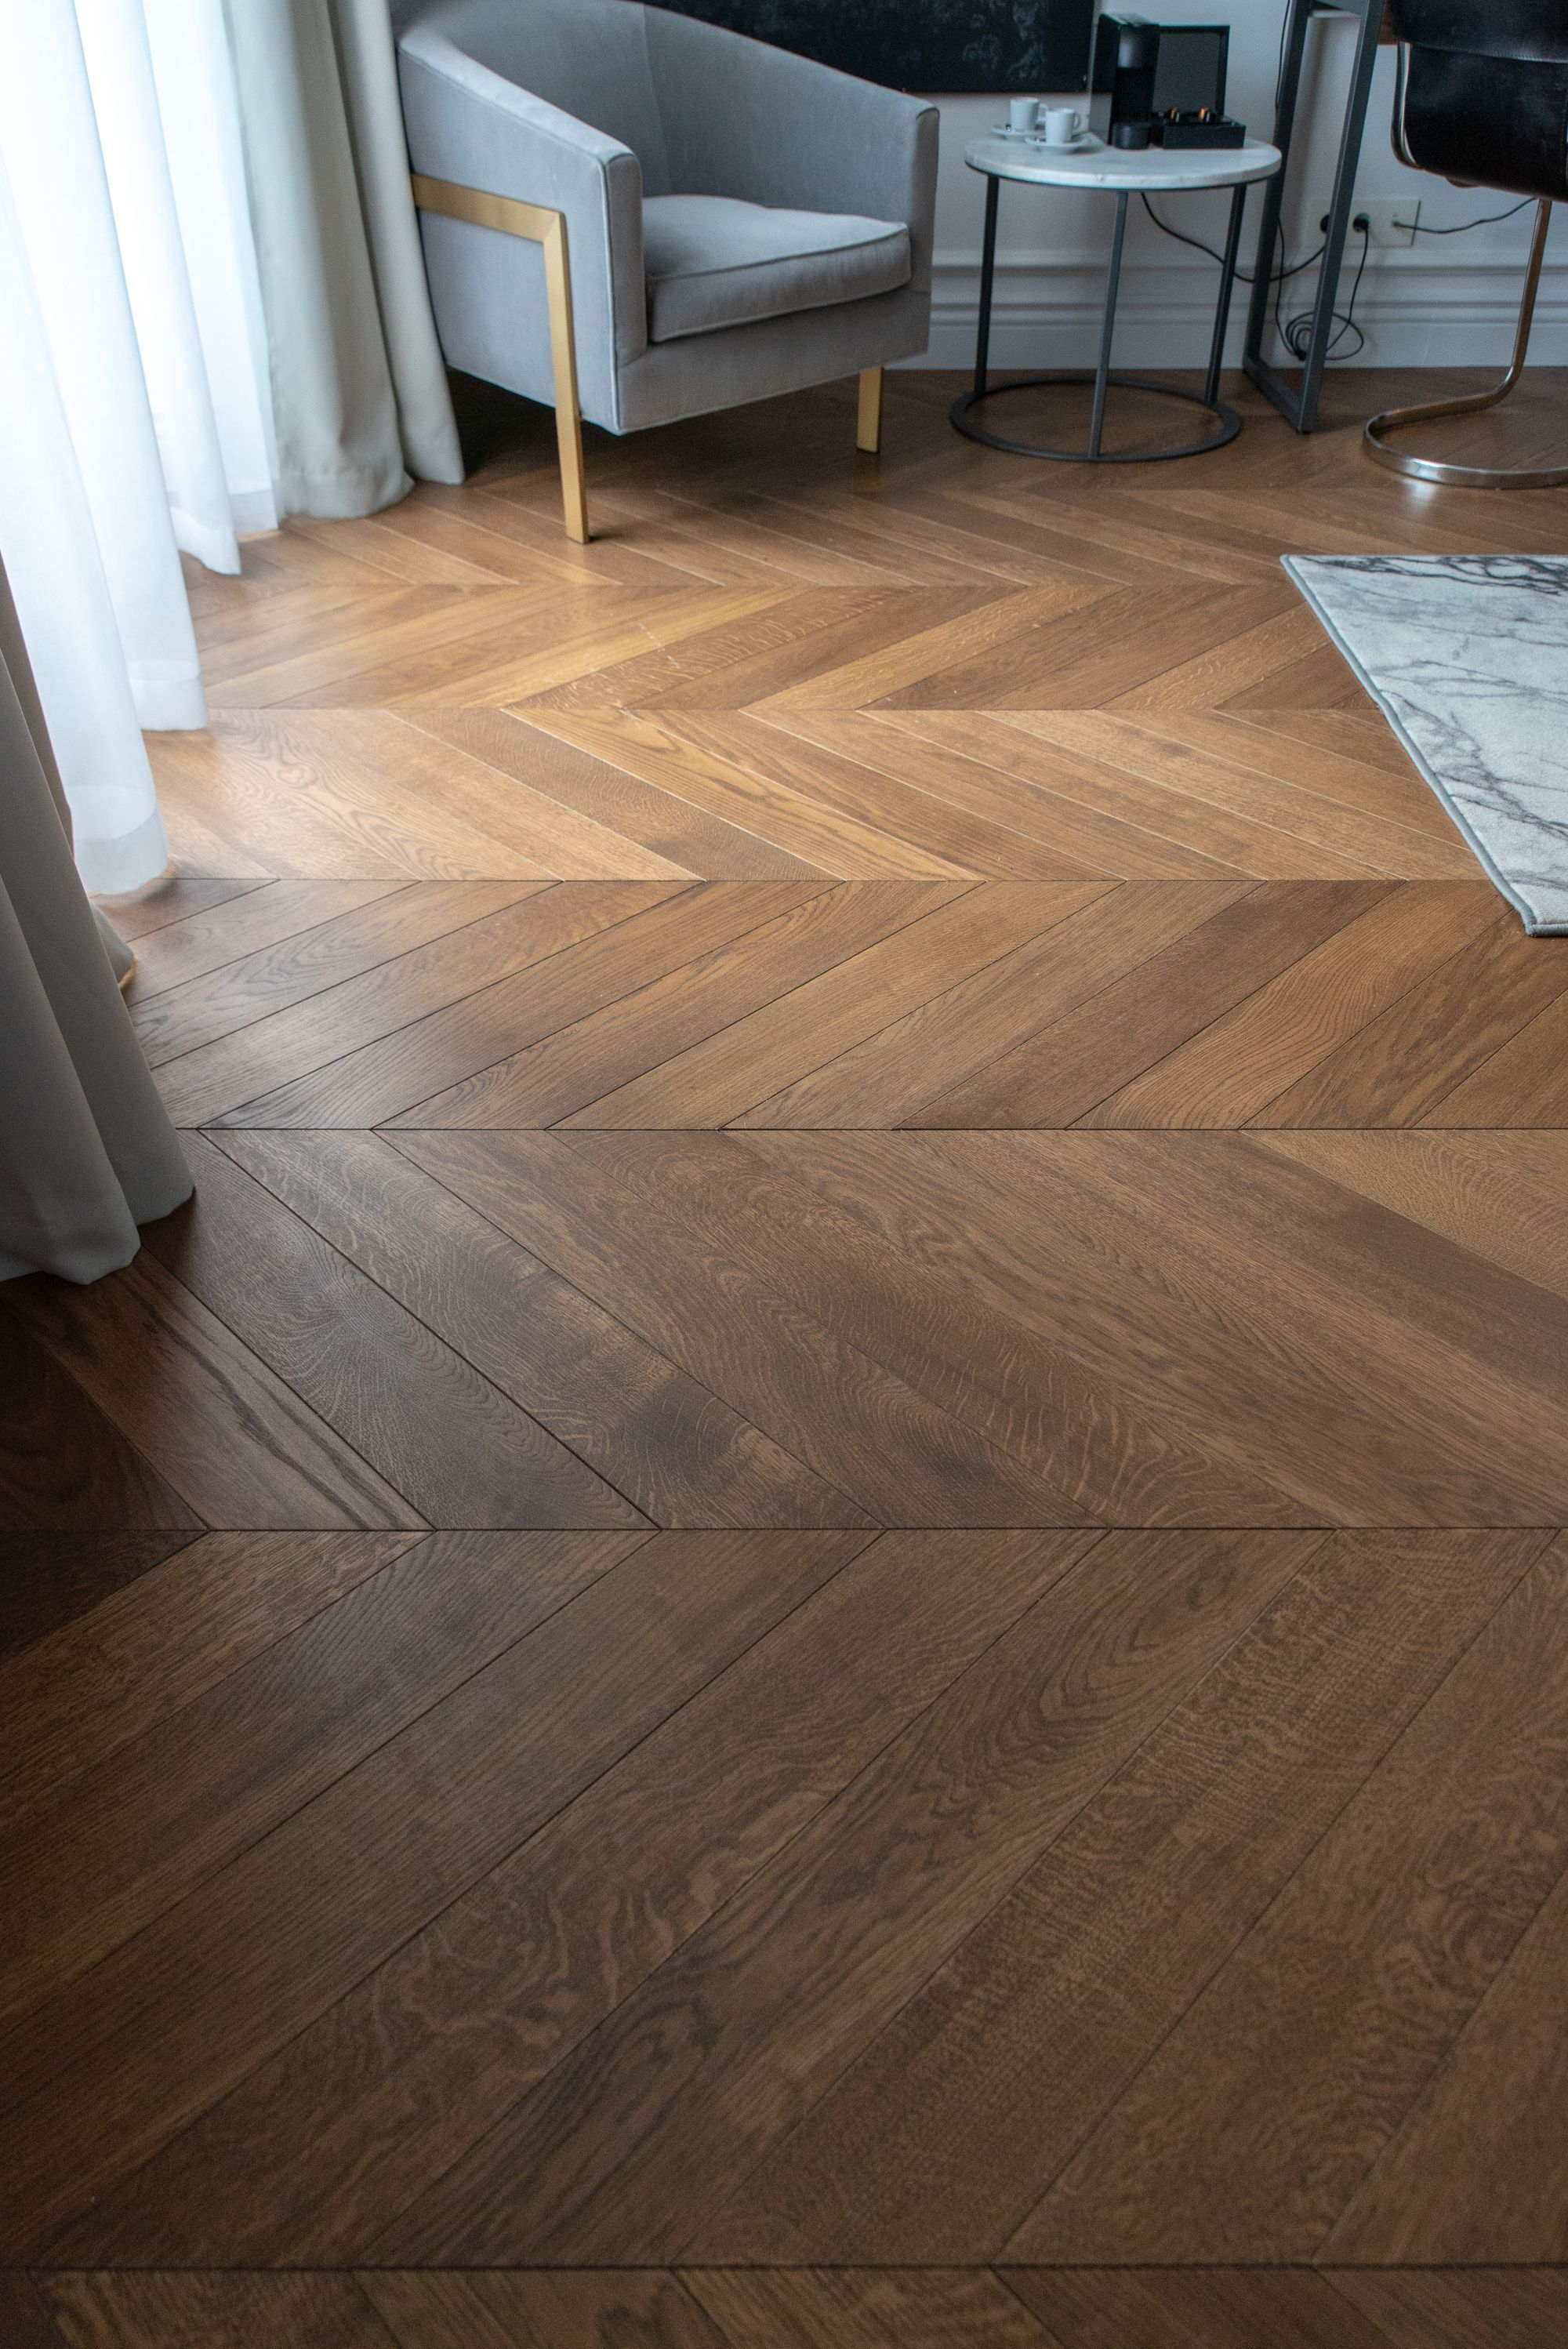 Parquet Flooring In 2020 Small House Interior Design House Flooring Modern Wood Floors